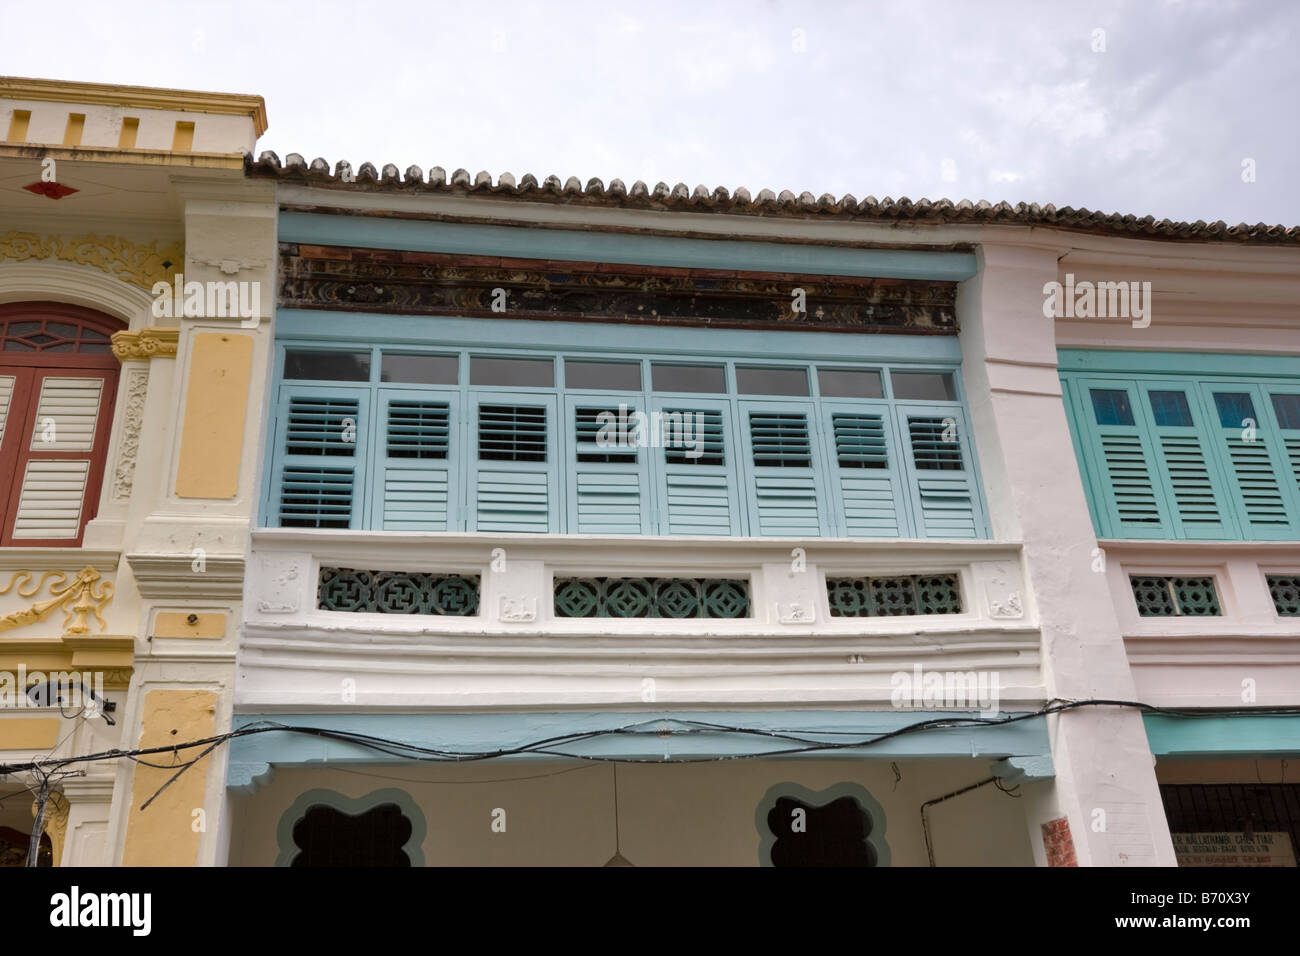 Upper stories of shophouses on Armenian Street, Georgetown, Penang Malaysia - Stock Image